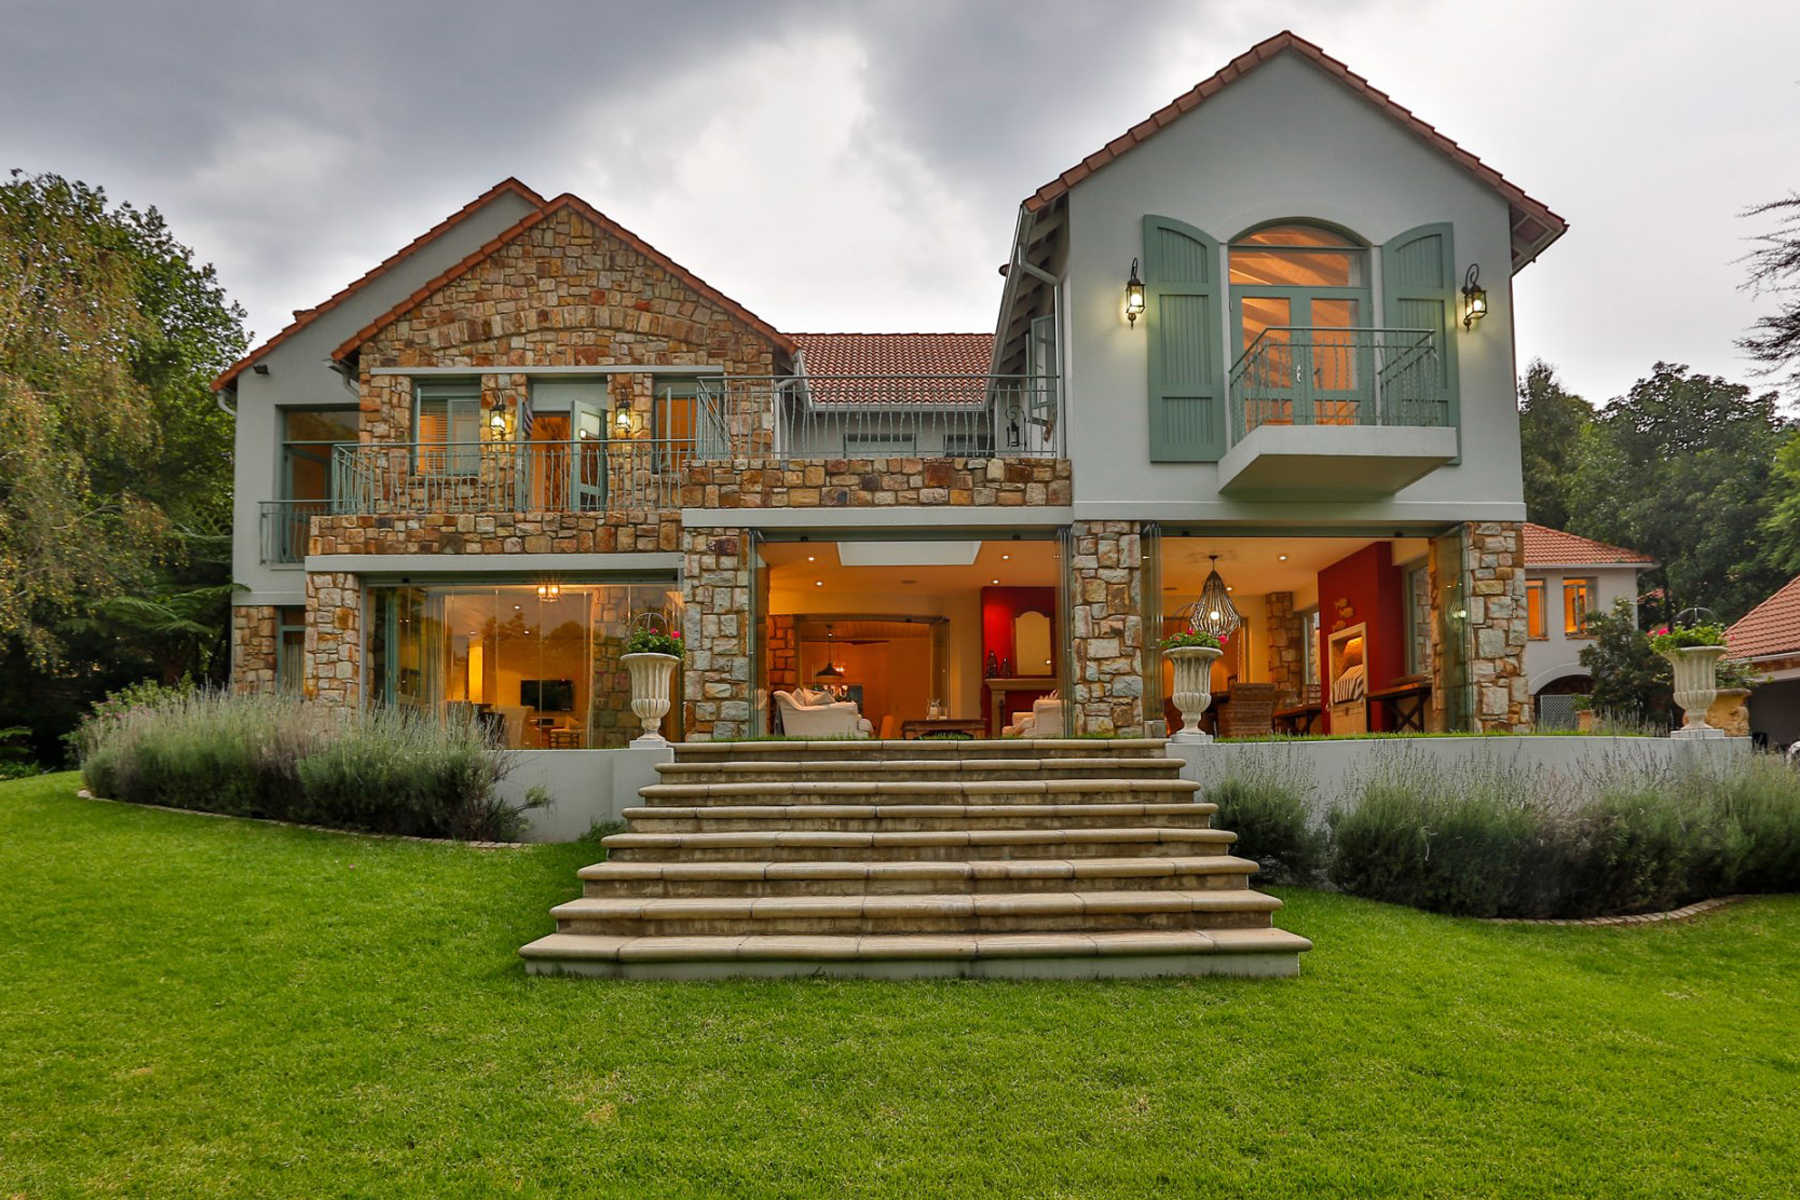 Single Family Home for Sale at Westcliff Johannesburg, Gauteng, 2193 South Africa